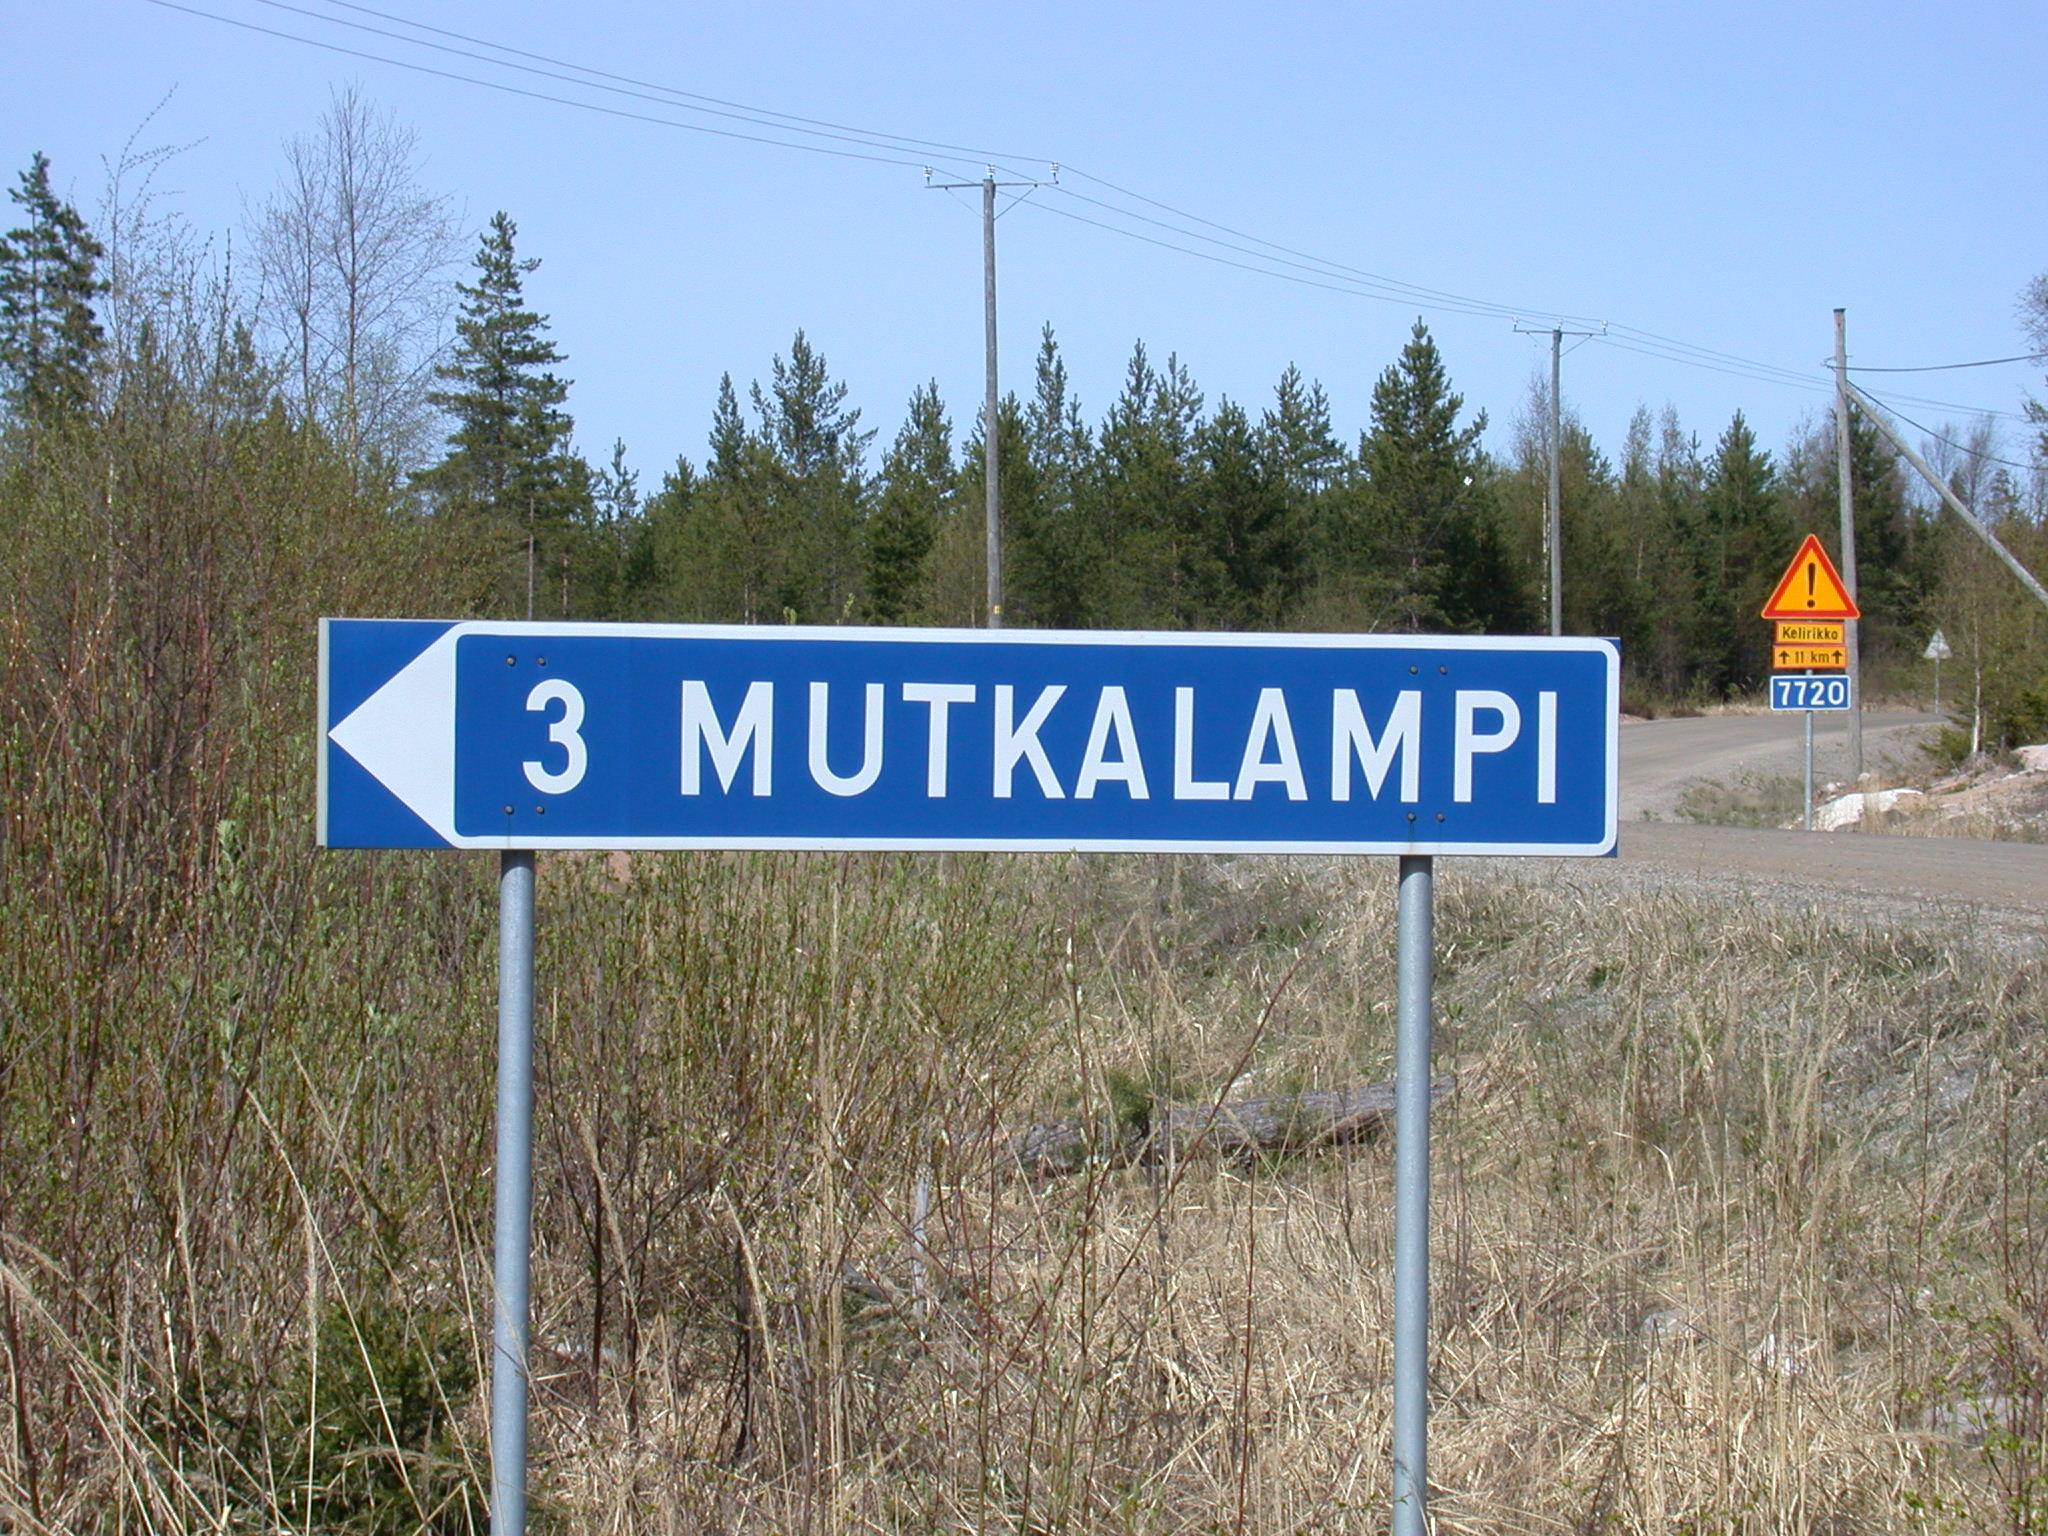 Direction to Mutkalampi